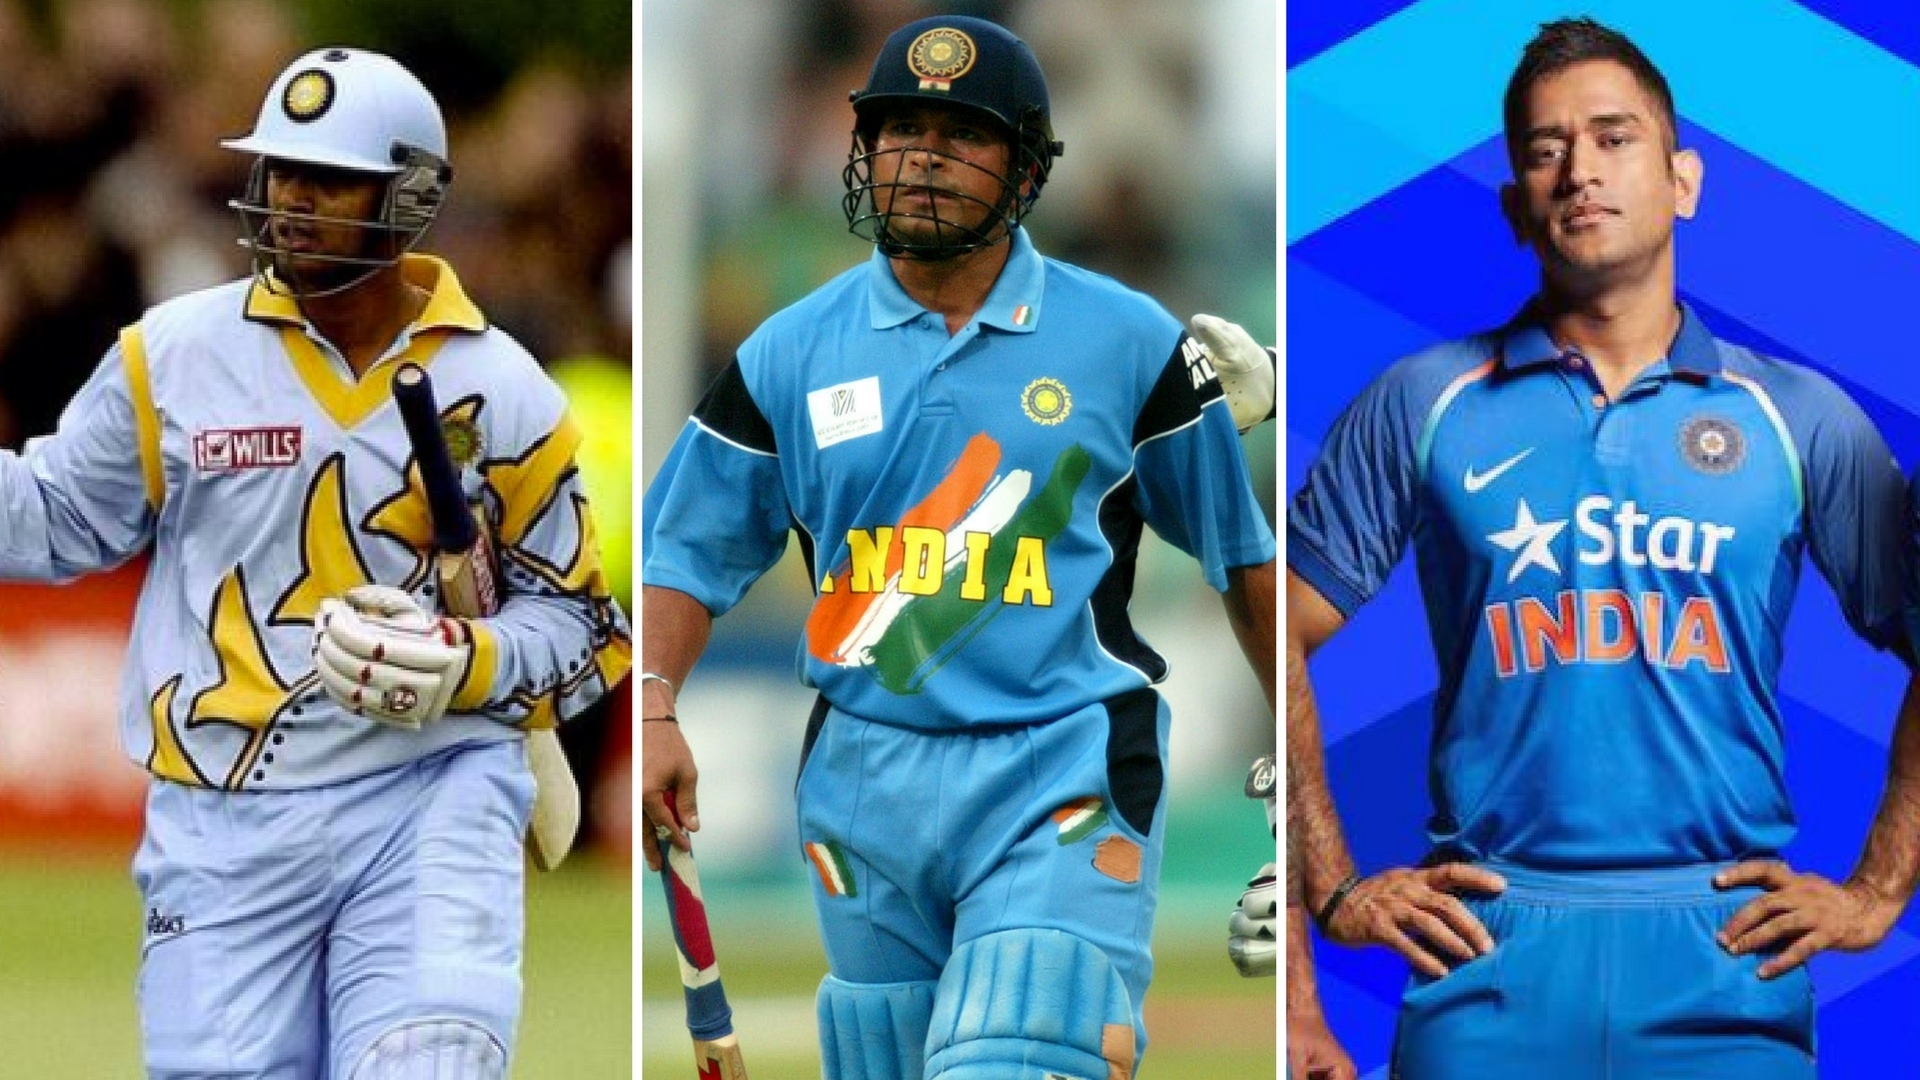 Photos Environment Friendly Jerseys For Team India: In Pictures: Evolution Of India's Cricket Jersey From 1985